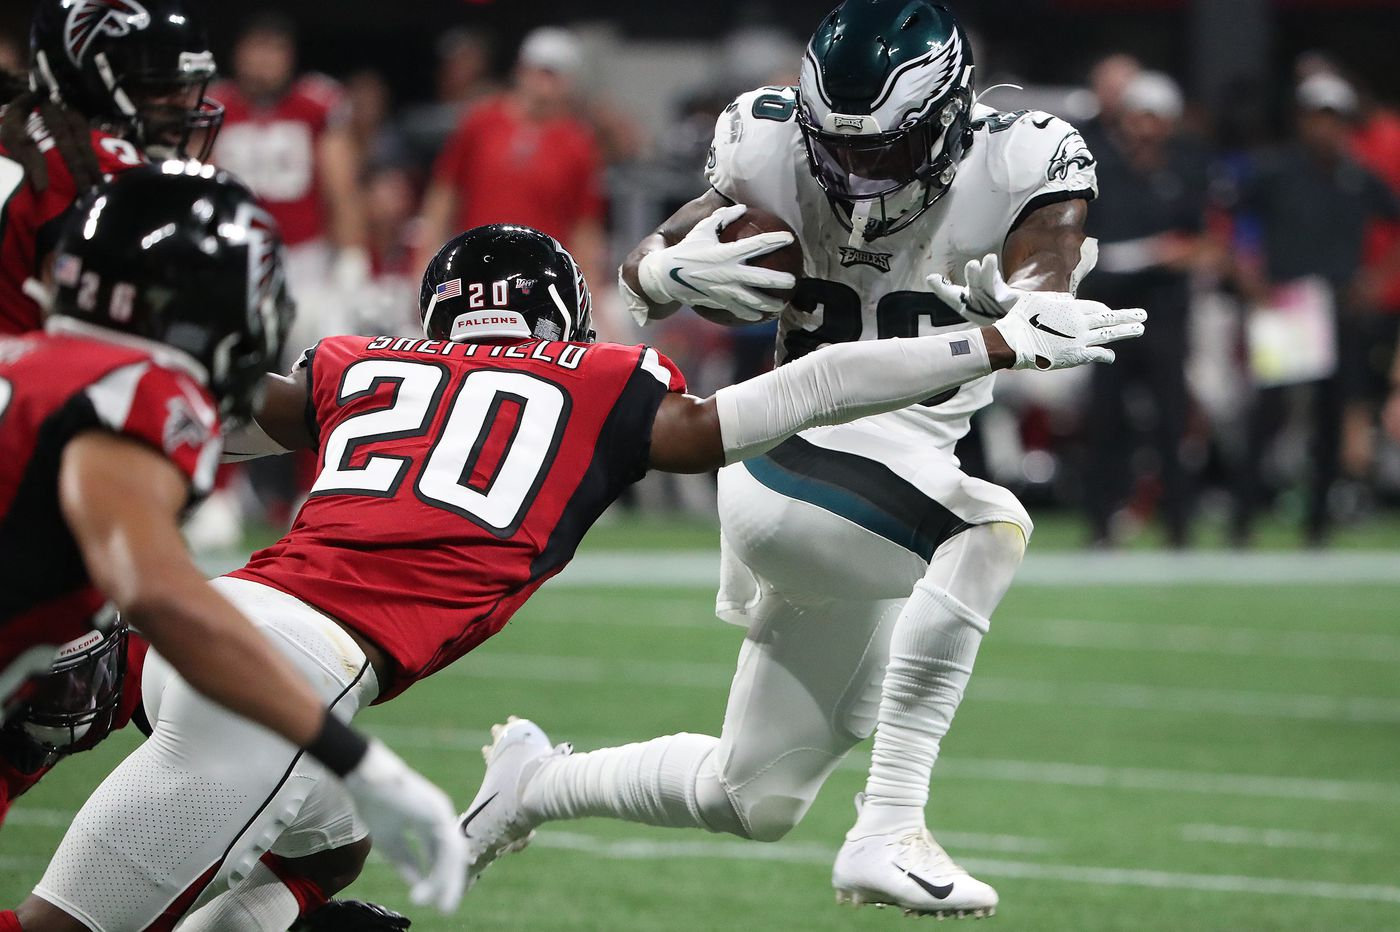 Grading the Eagles: Birds could have beaten Falcons, but they came up short